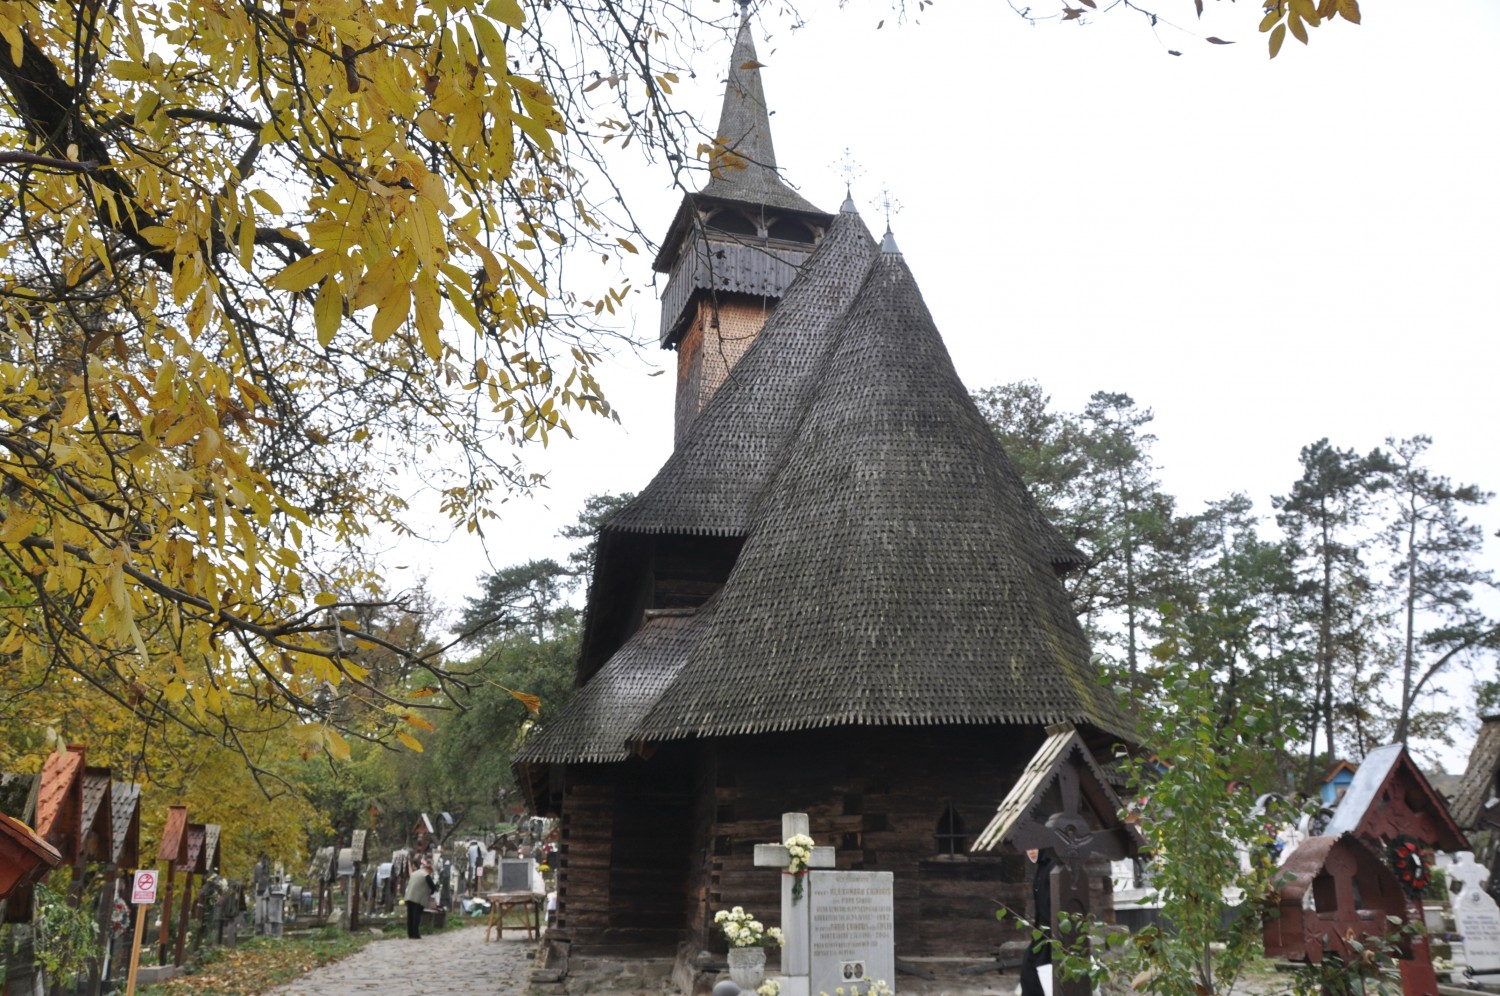 14th century wooden church